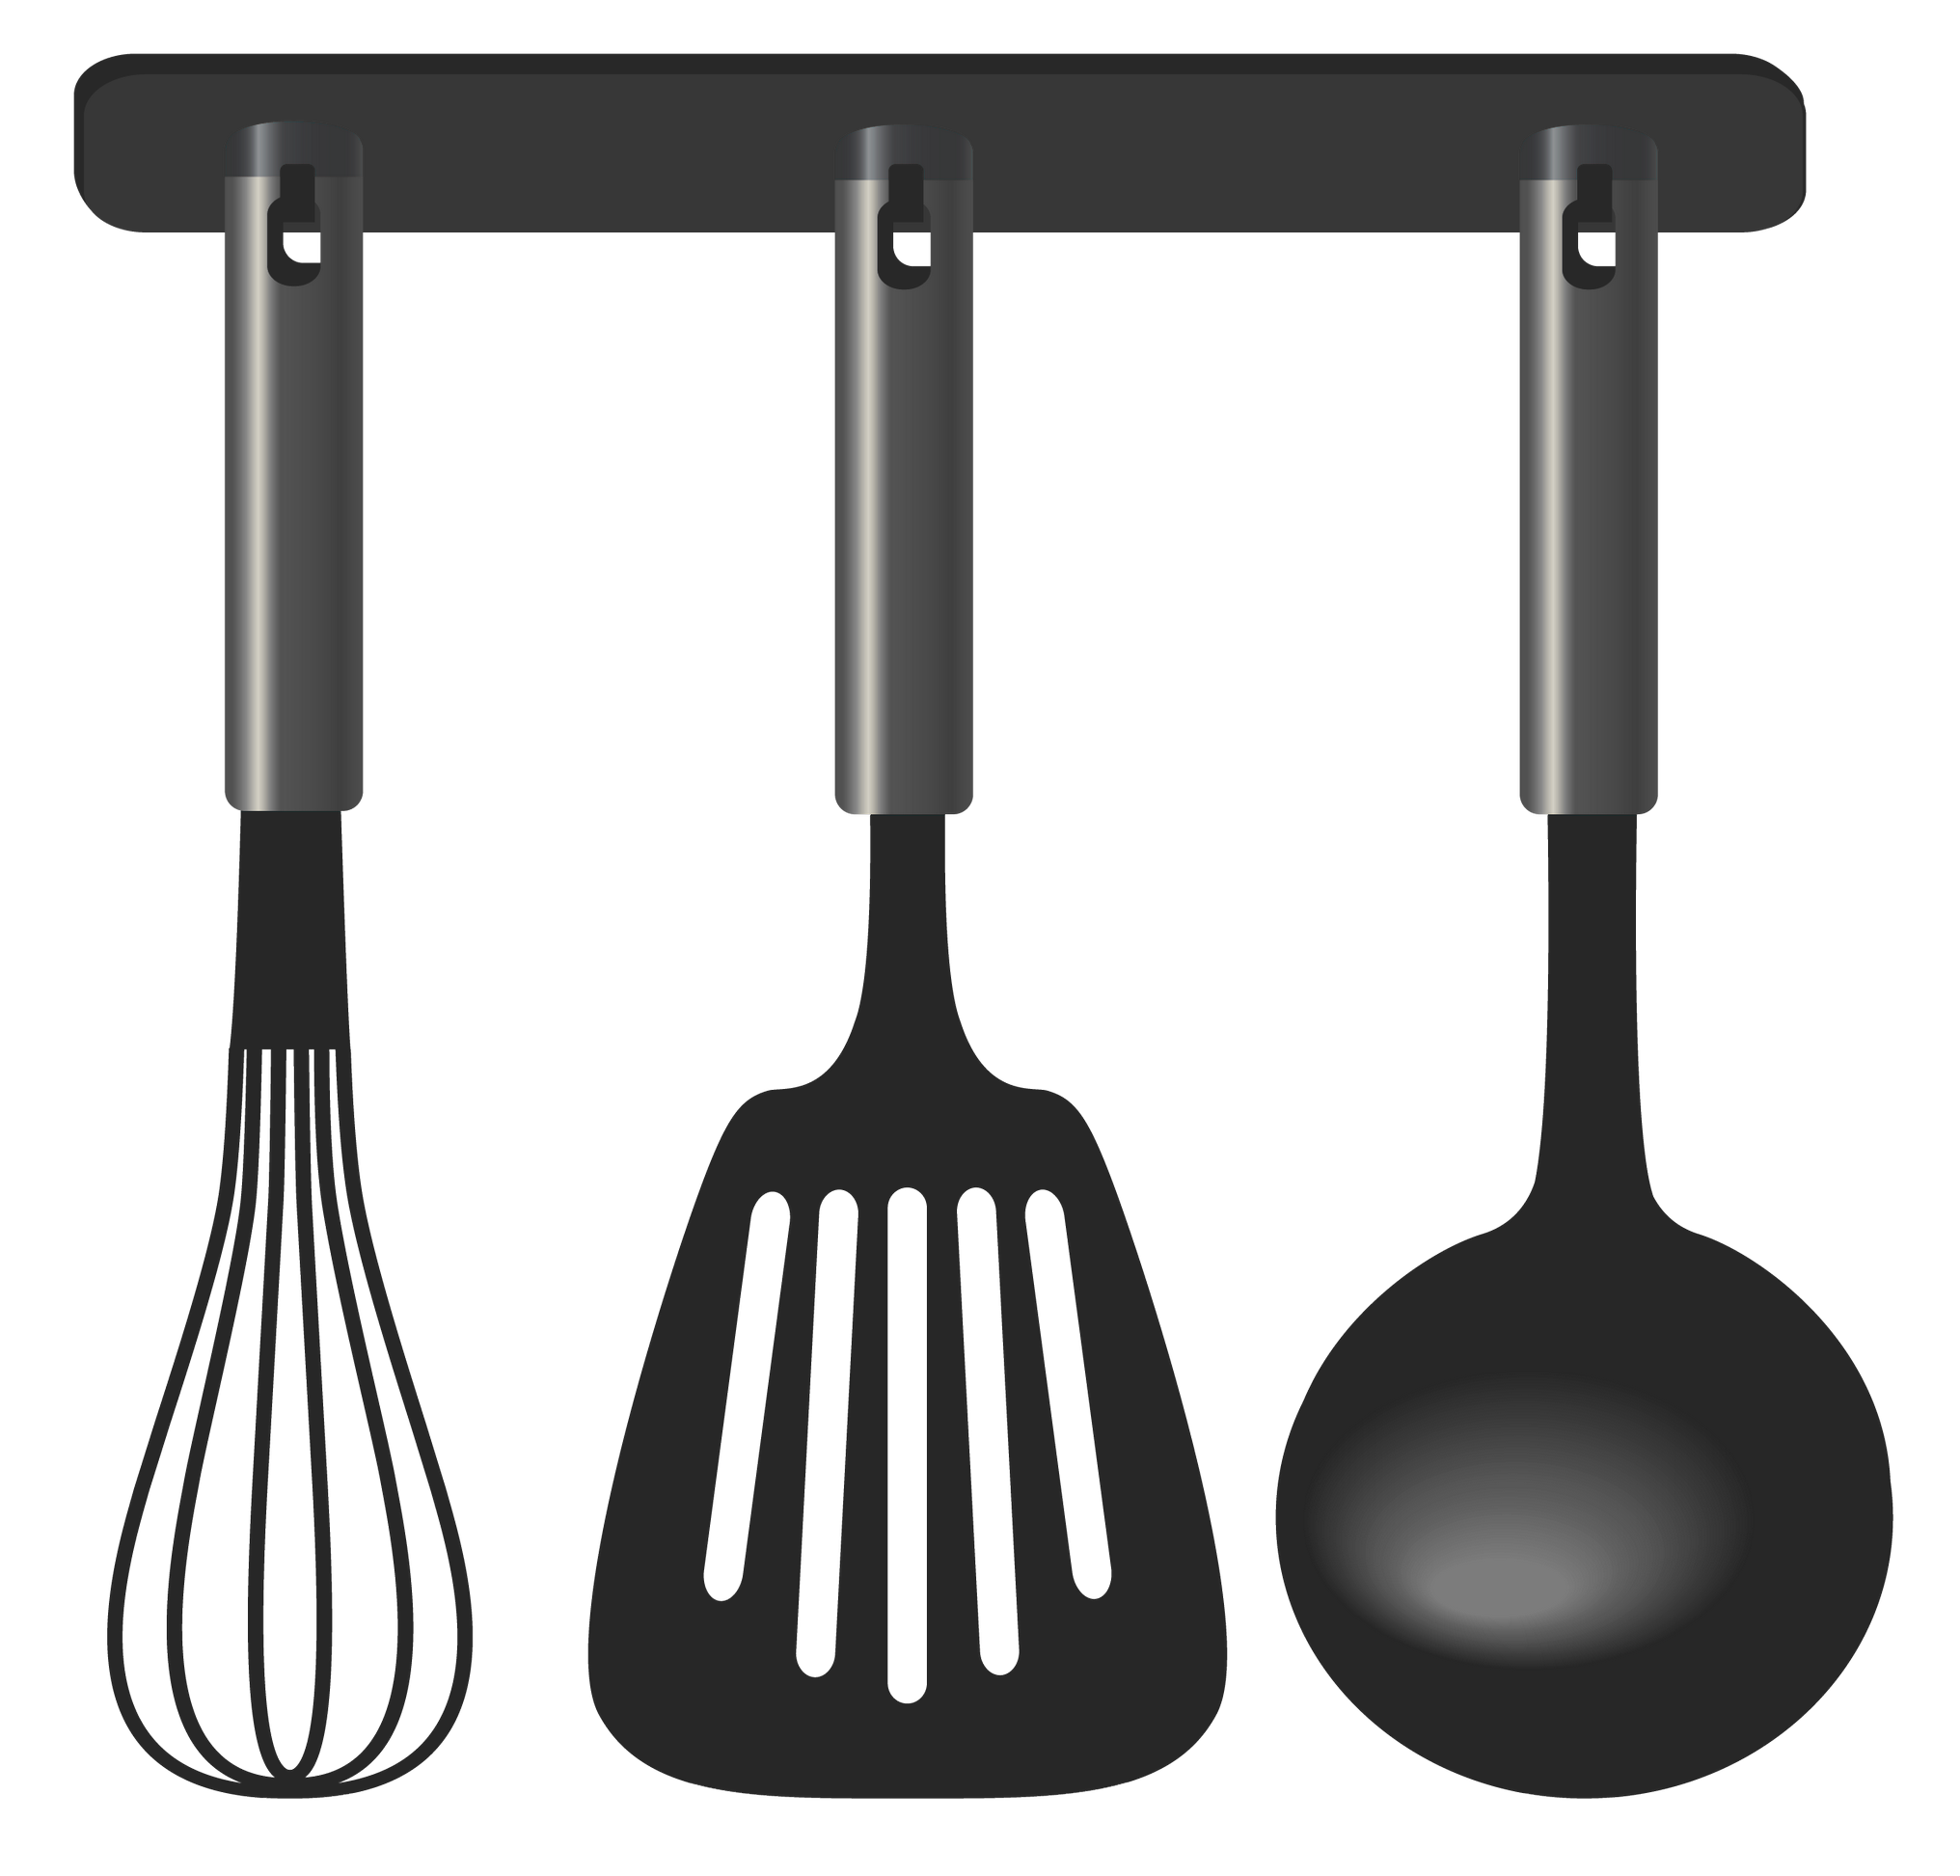 Black set png best. Name clipart kitchen tool